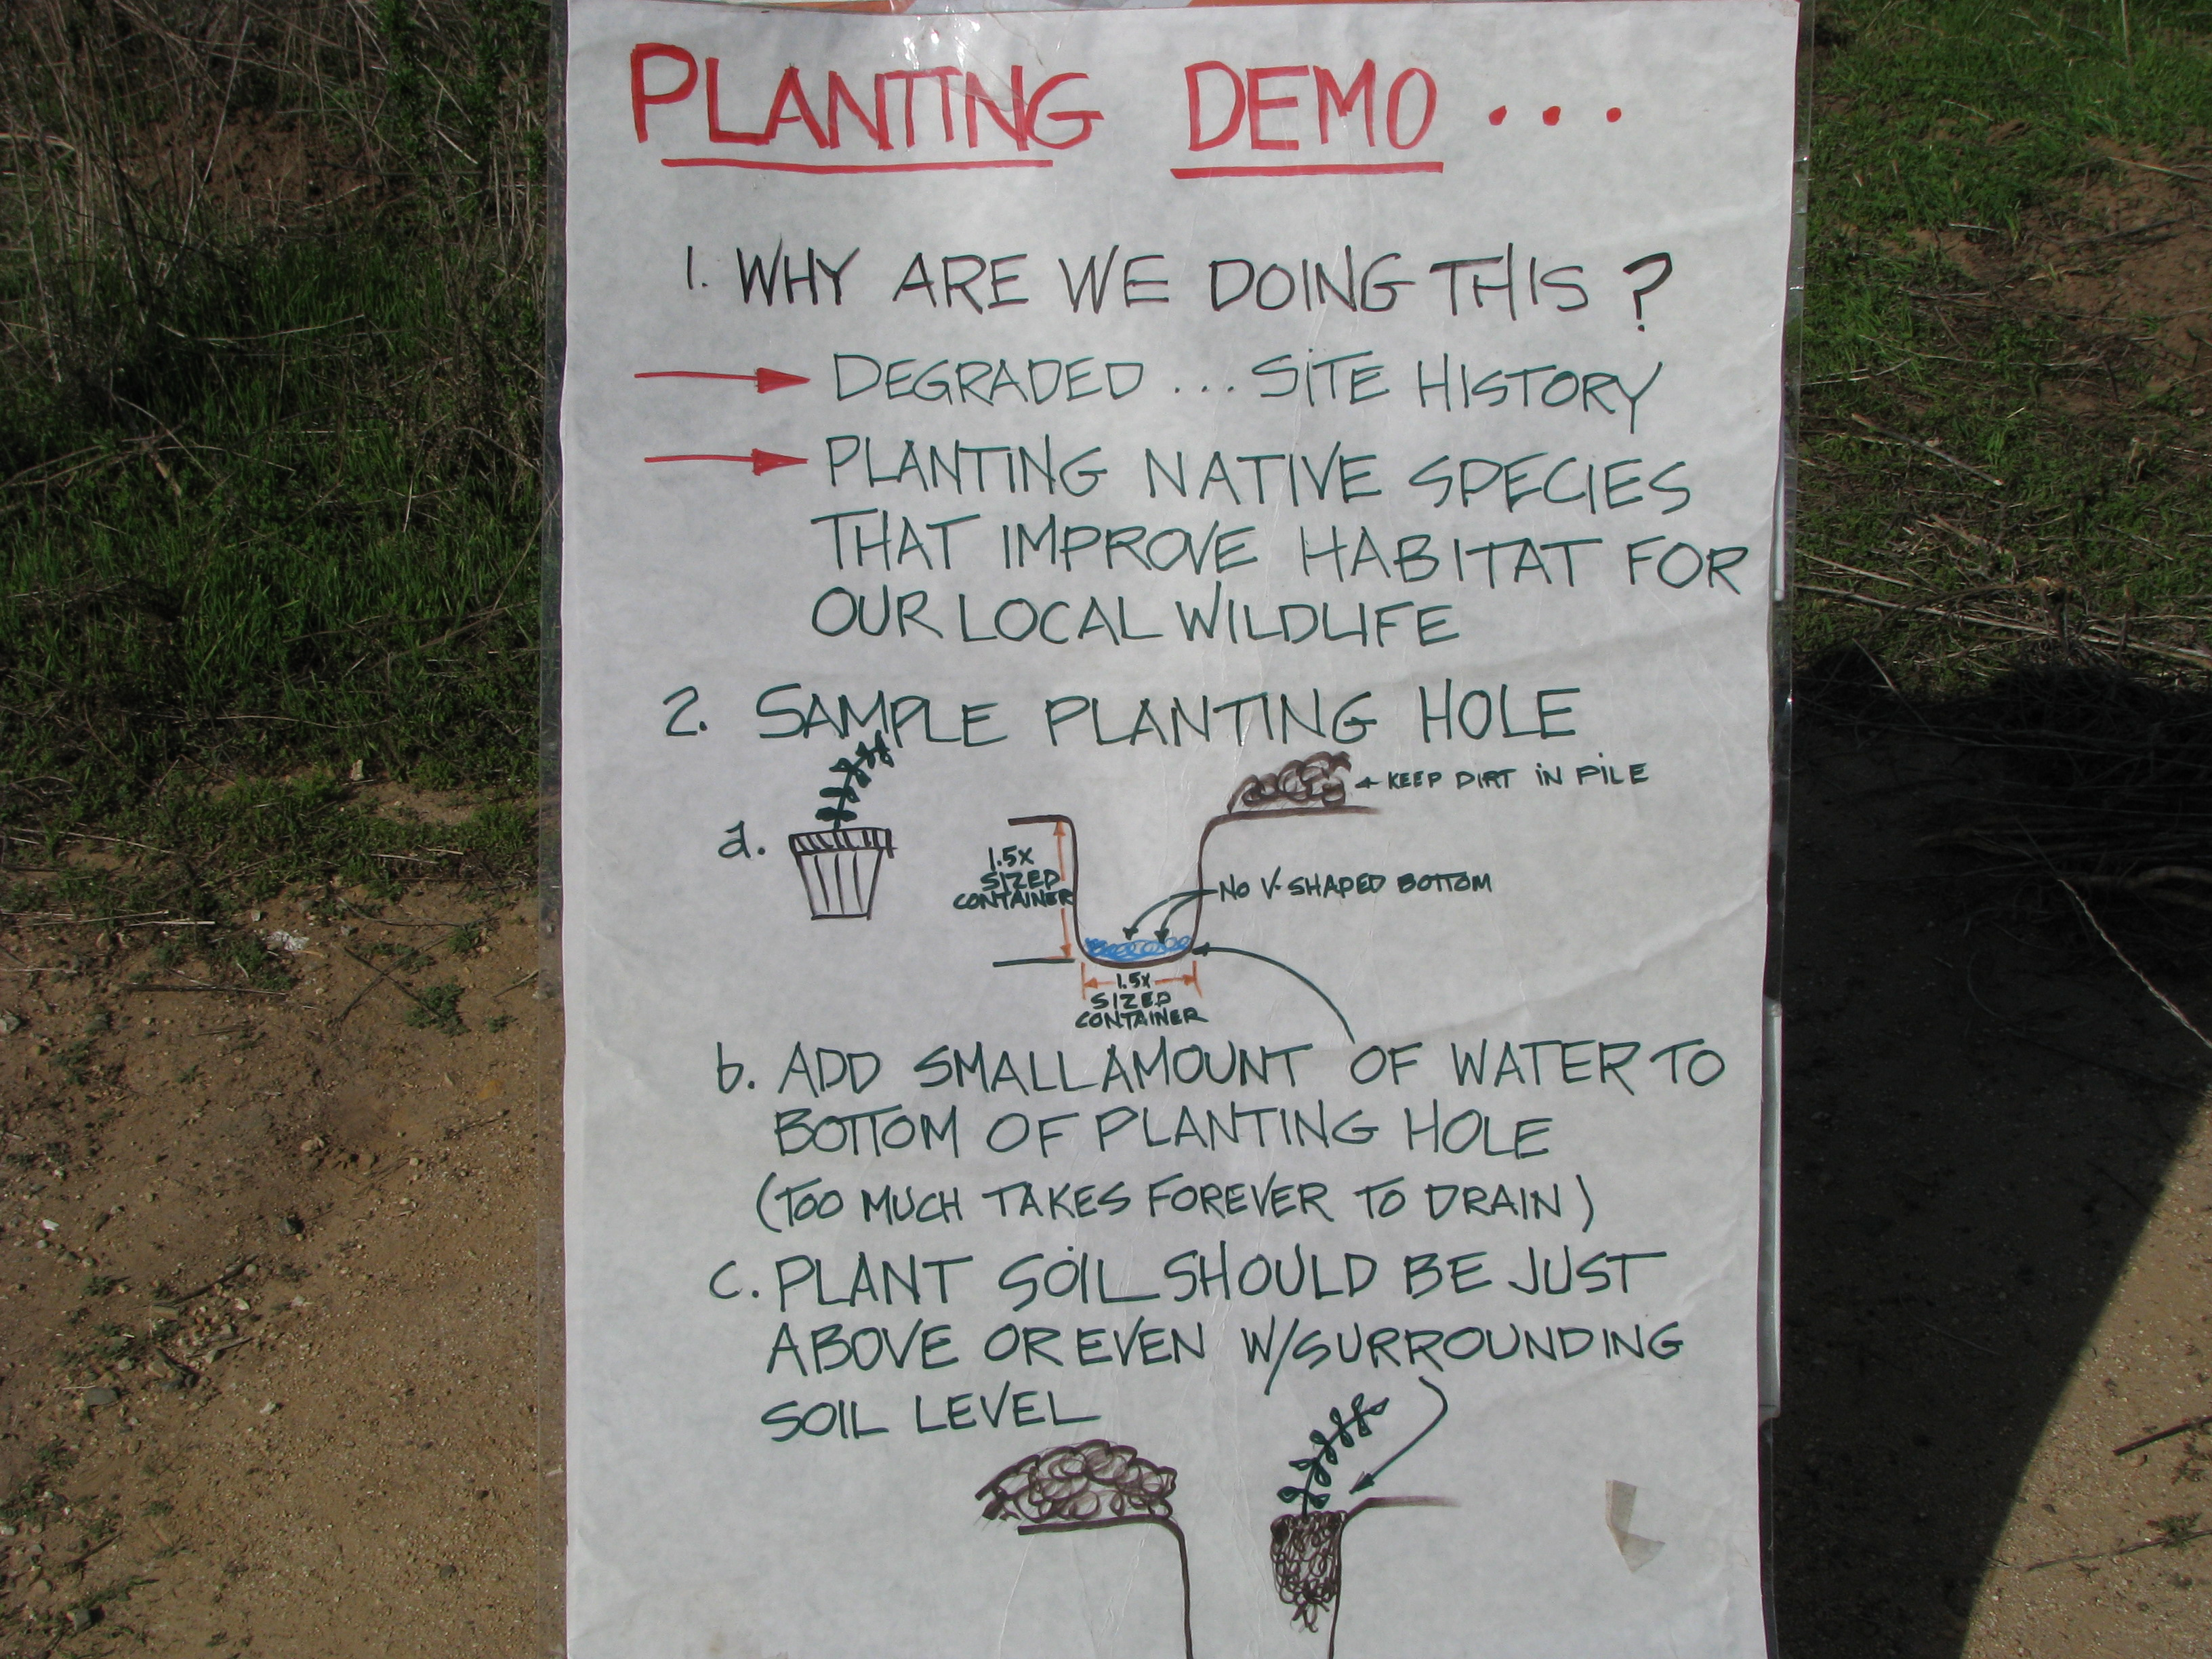 Instructions on Planting